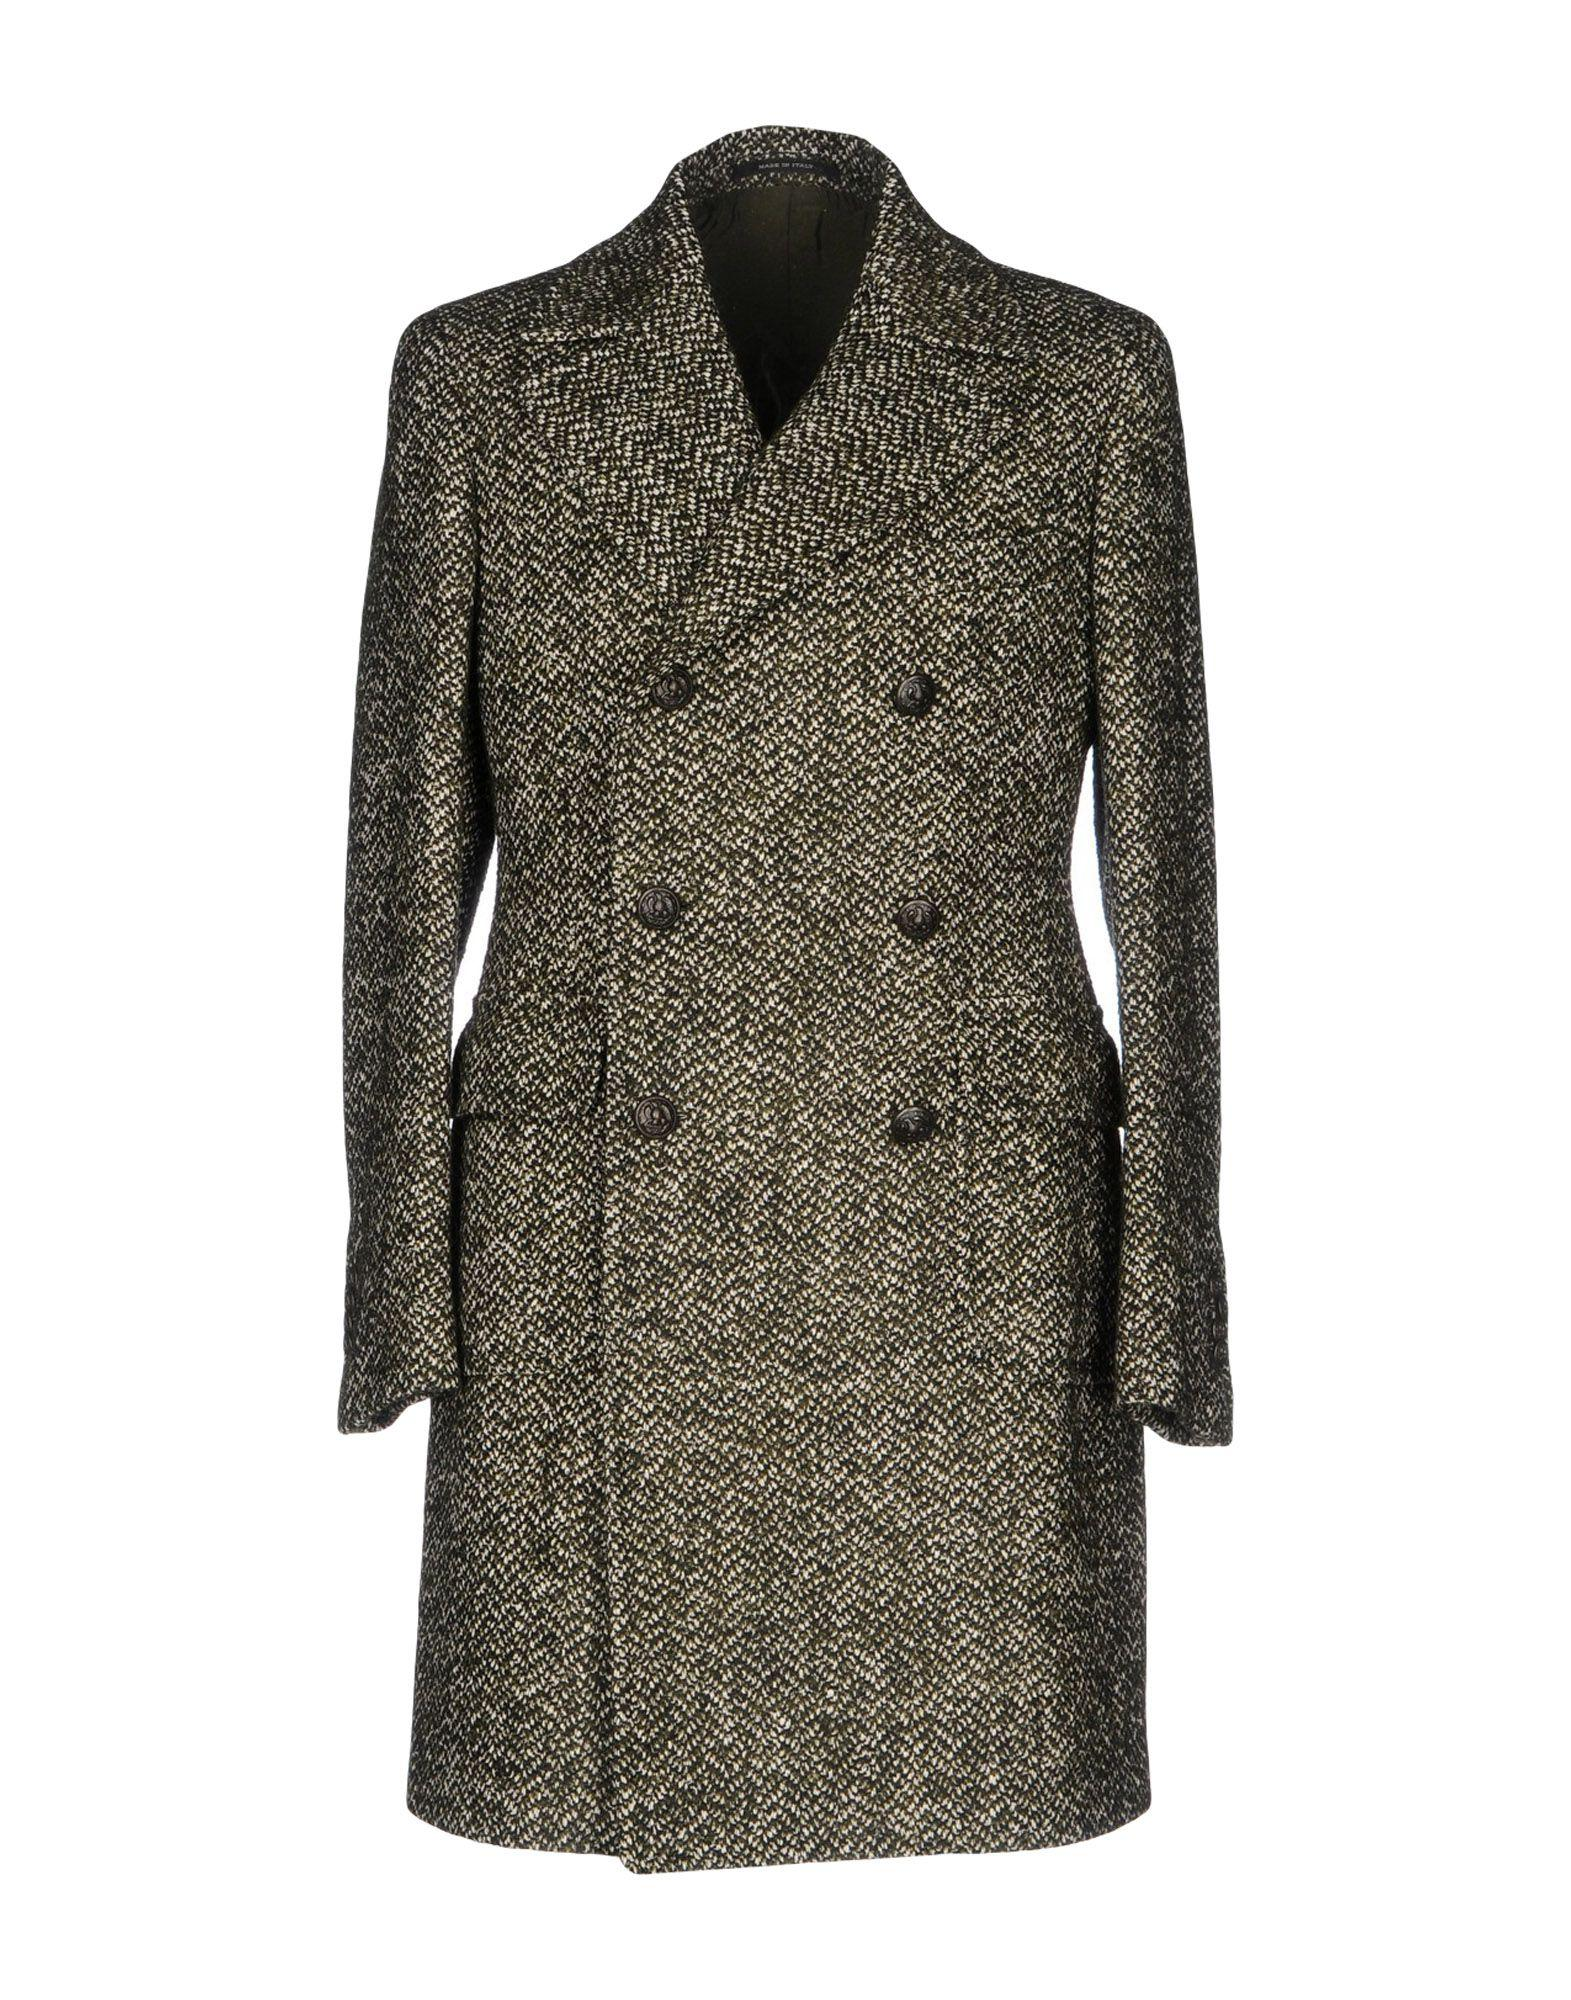 Tagliatore Coat In Military Green